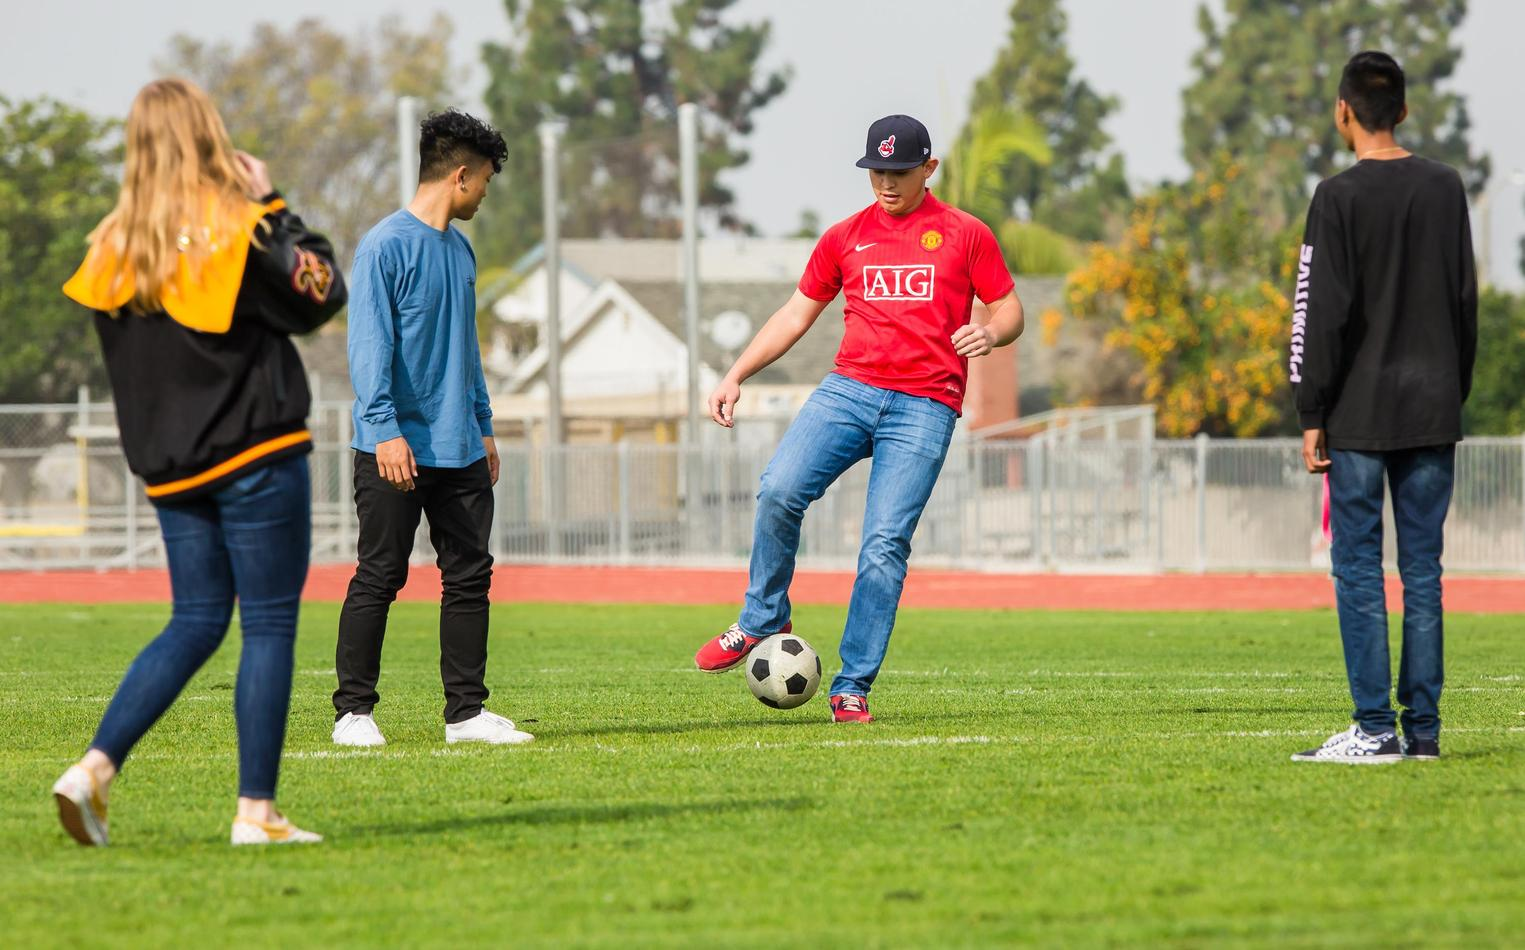 Four high school students kicking a soccer ball after class.